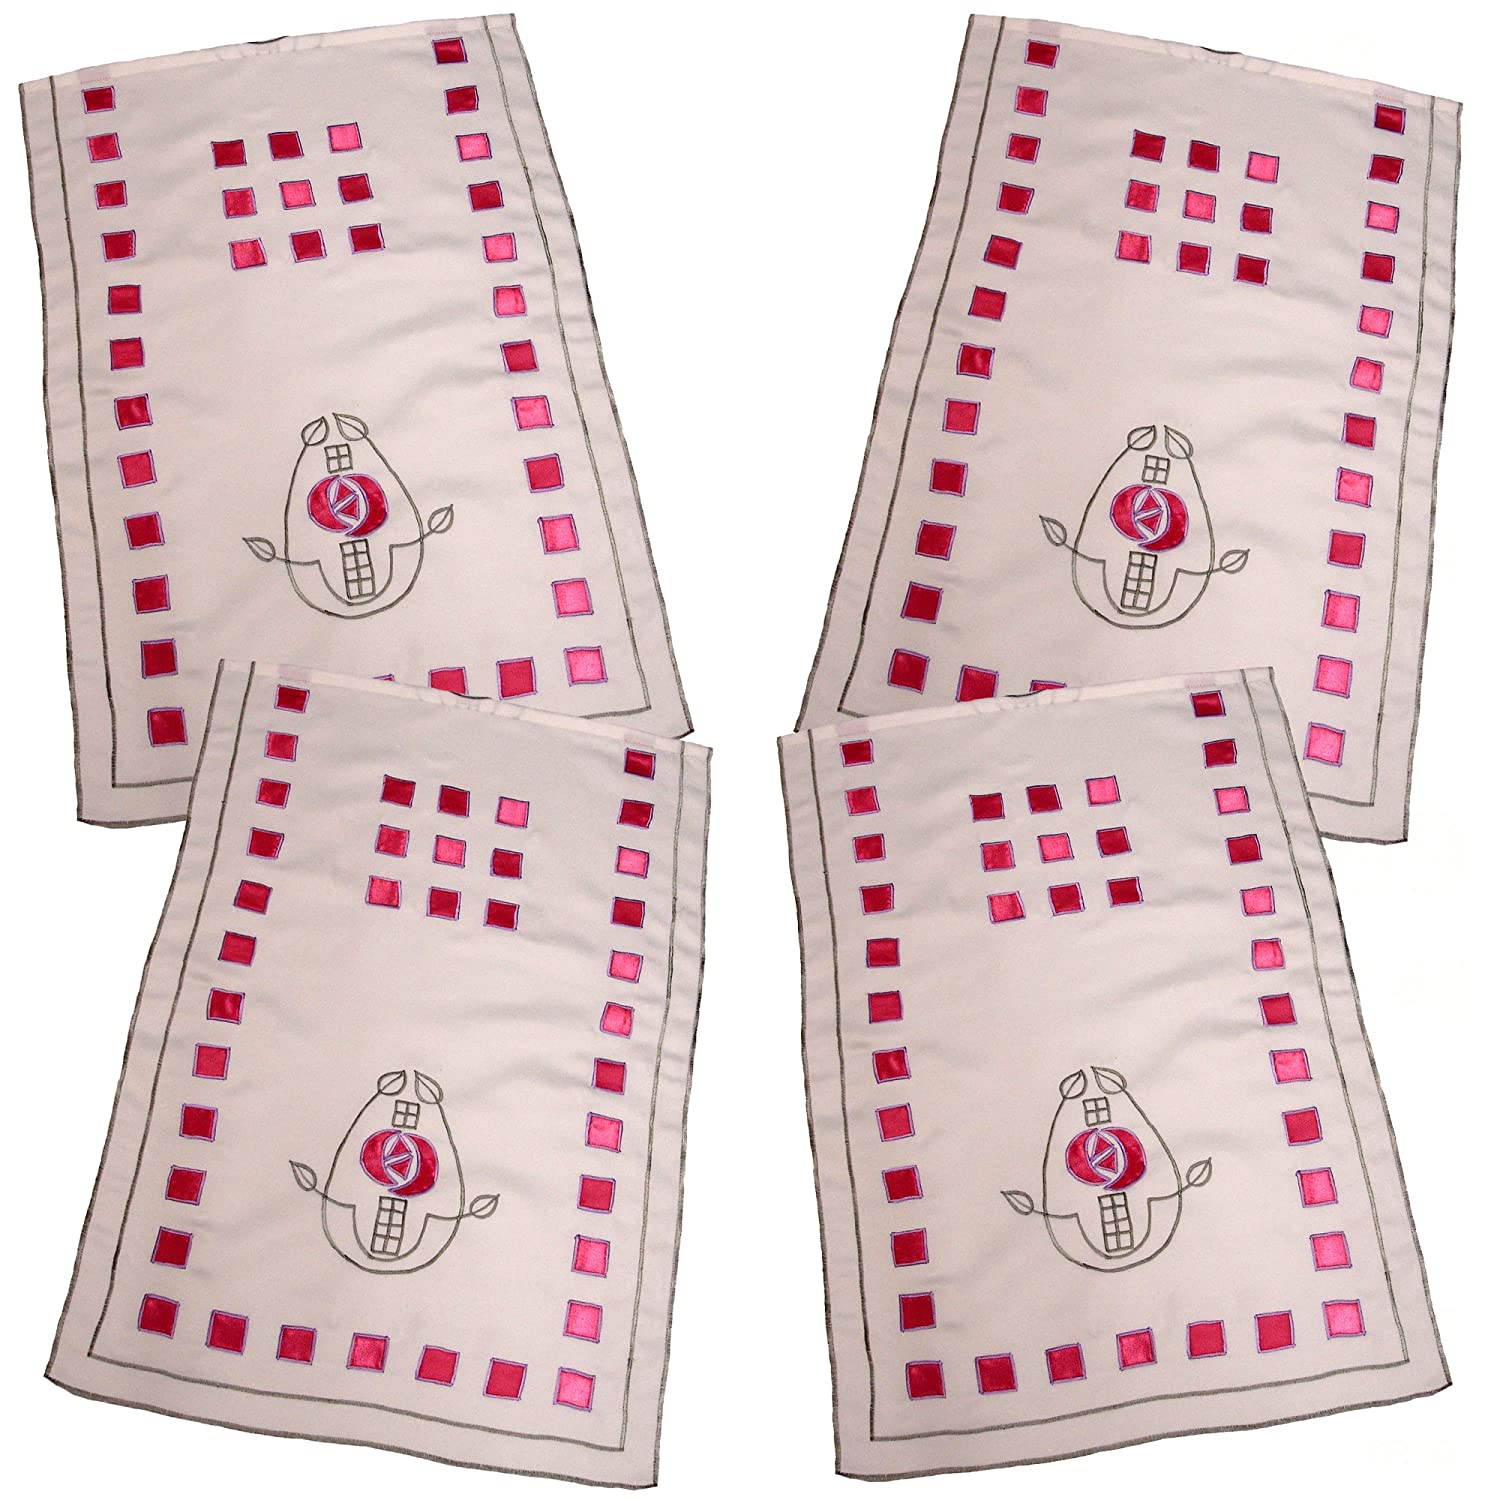 4 Charles Rennie Mackintosh Embroidered and Appliqued Chair Back Covers Antimacassar RM134 FREE UK POSTAGE GiftsScotlandCom